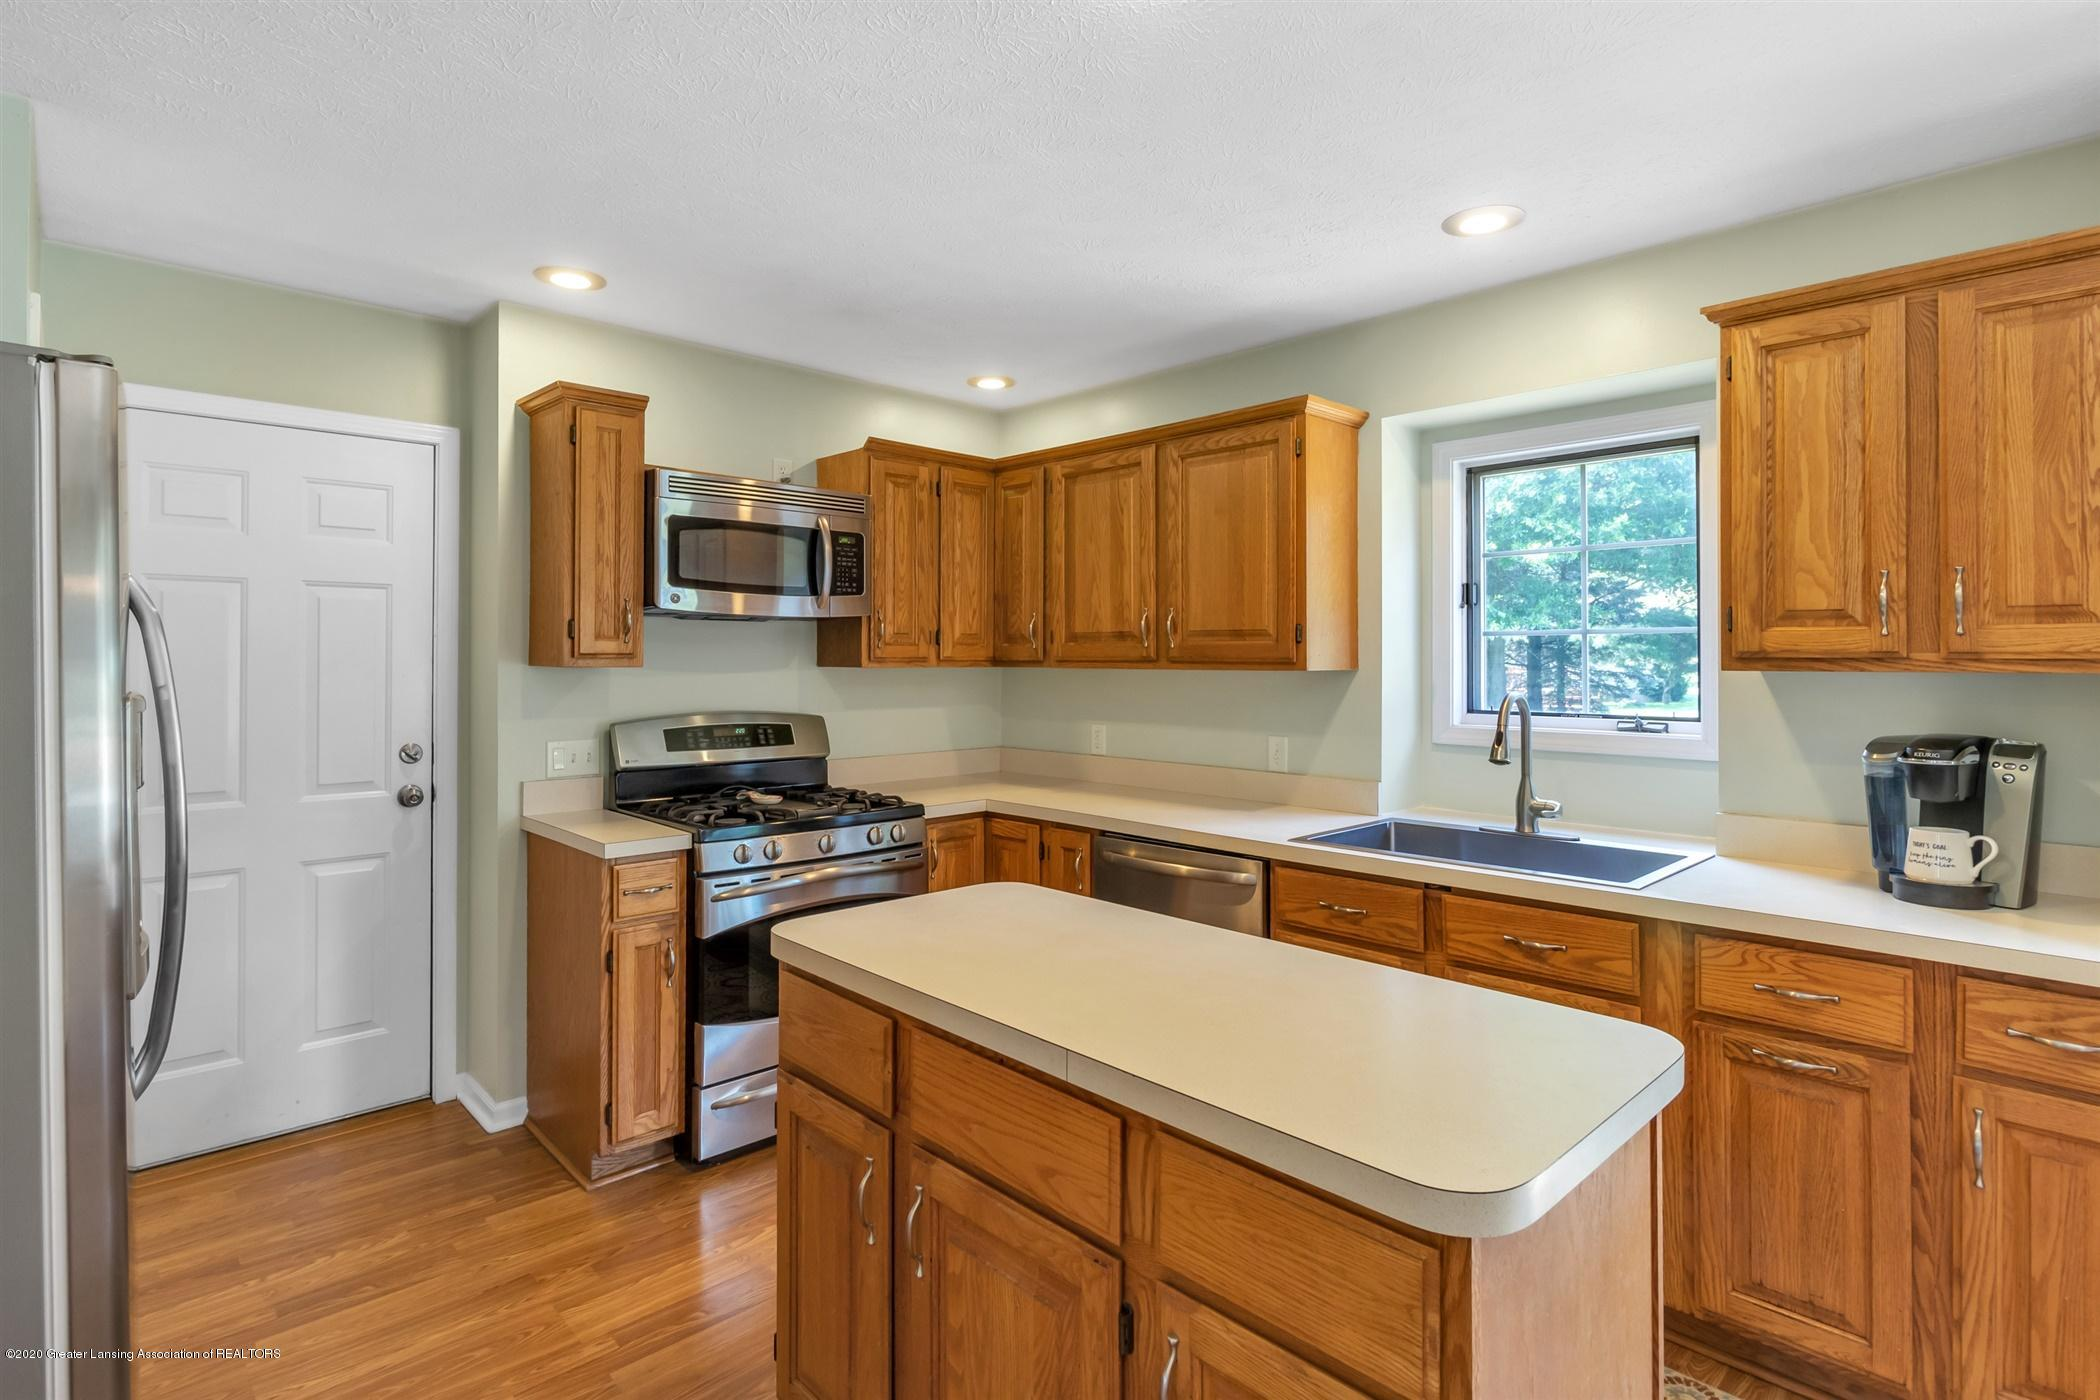 2945 Whistlewood Way - 15-2945Whistlewood-WindowStill-Real - 15